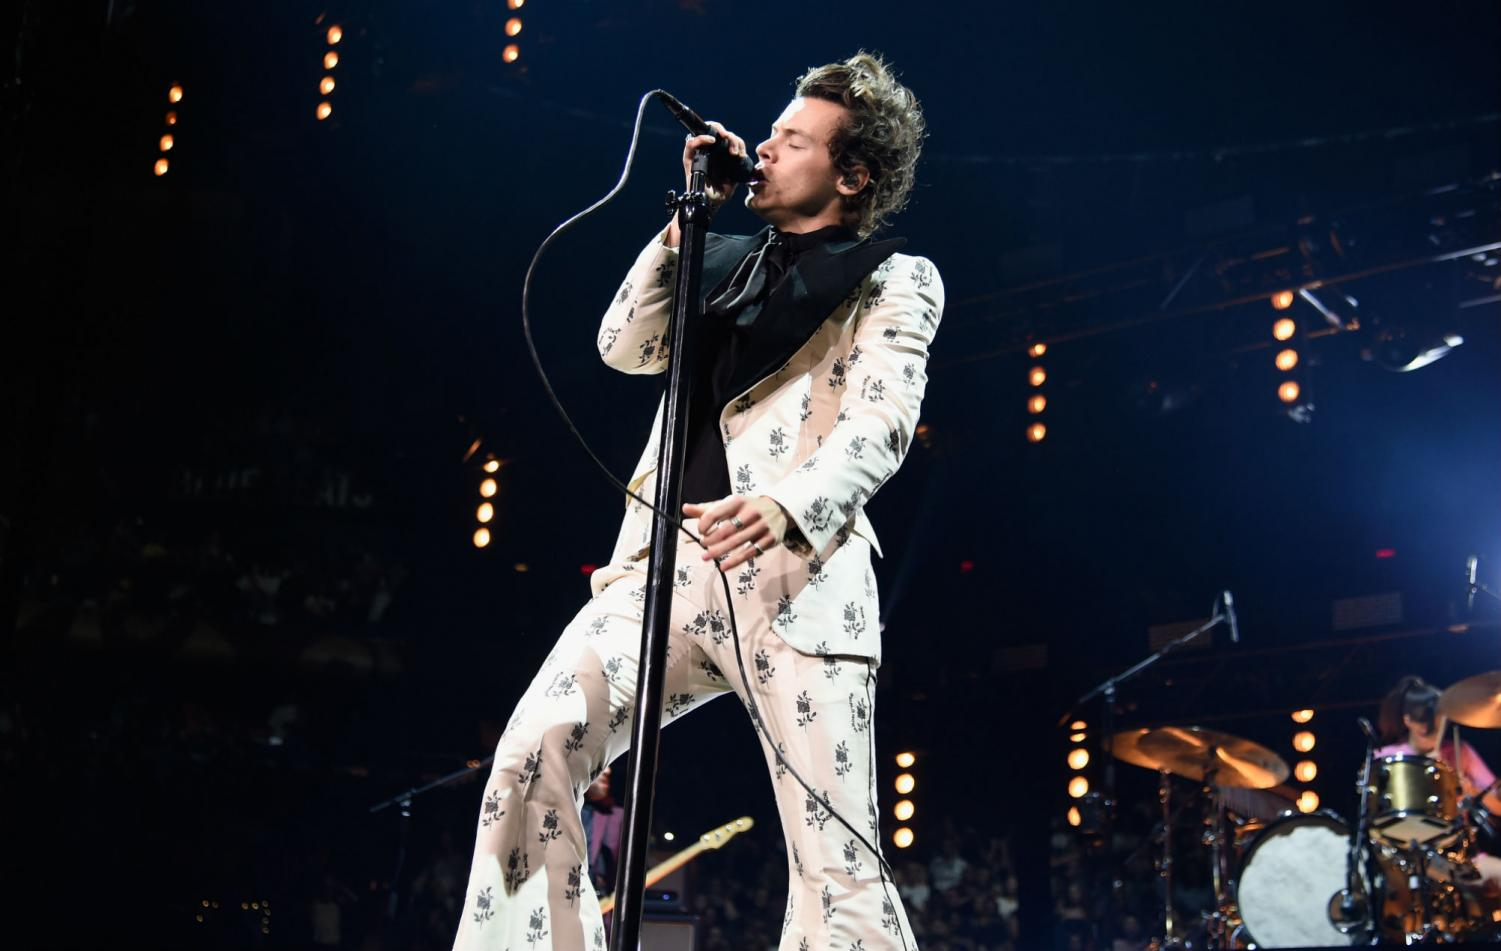 Styles belts out his notes while pulling off an full and white floral velvet suit. | credit: https://www.nme.com/news/music/harry-styles-new-song-watermelon-sugar-hosting-snl-2574658